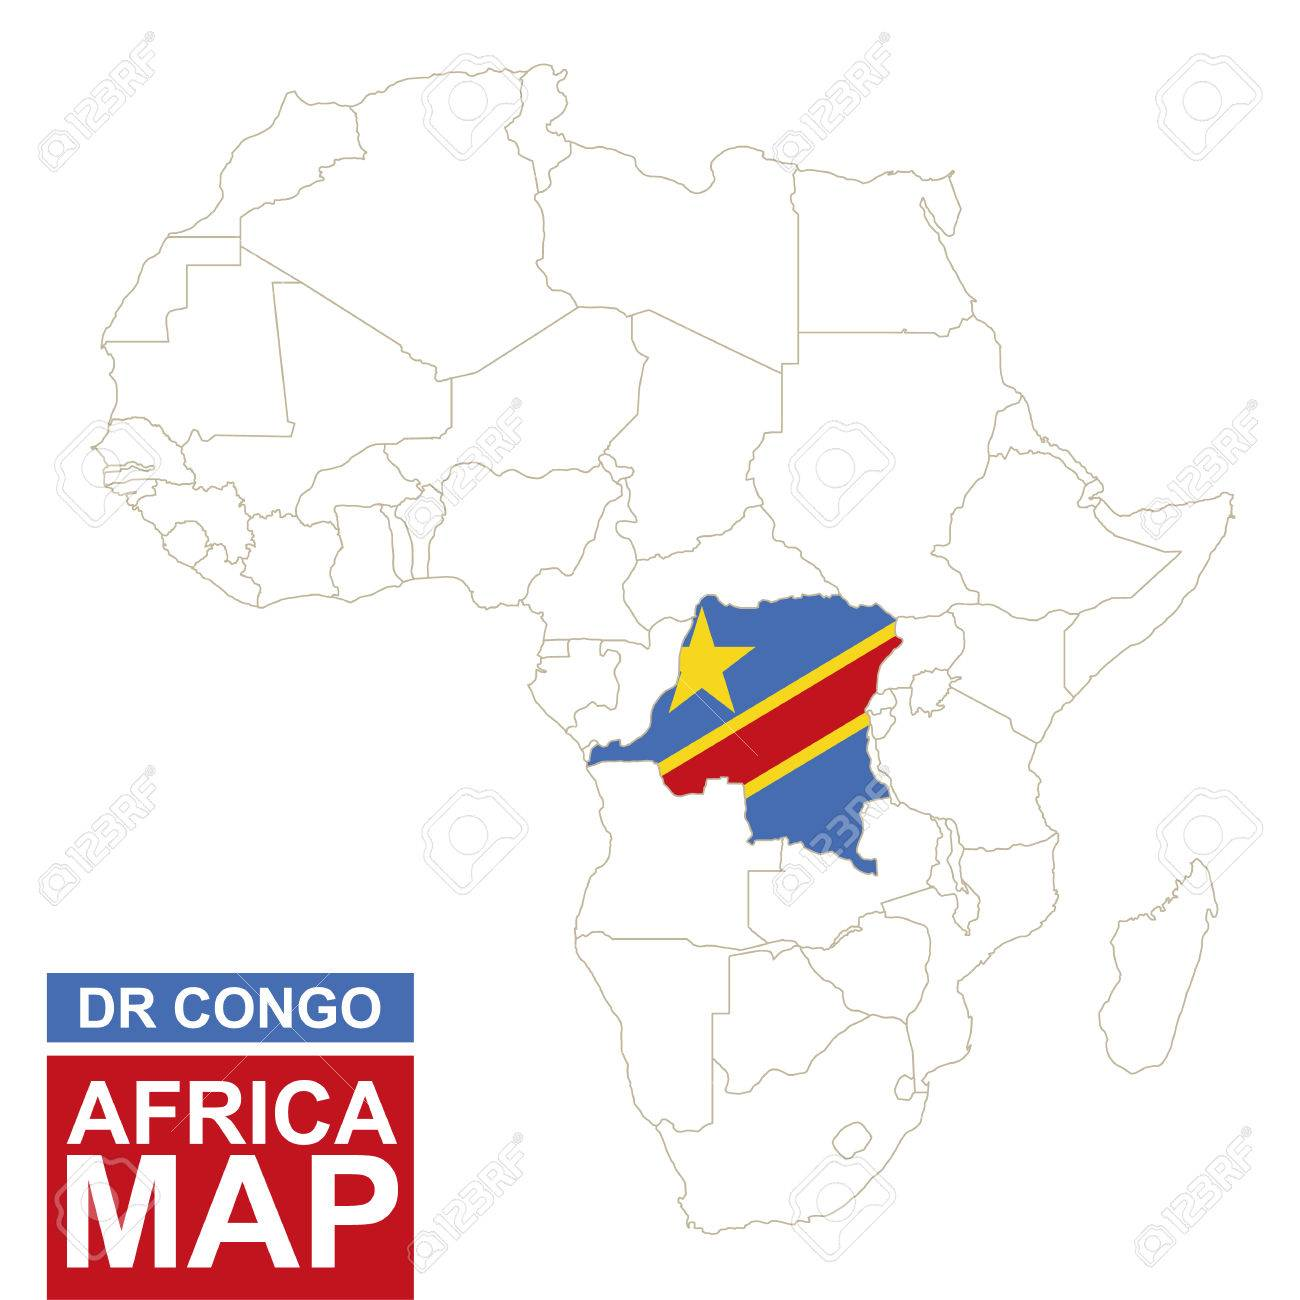 Congo On Africa Map.Africa Contoured Map With Highlighted Democratic Republic Of